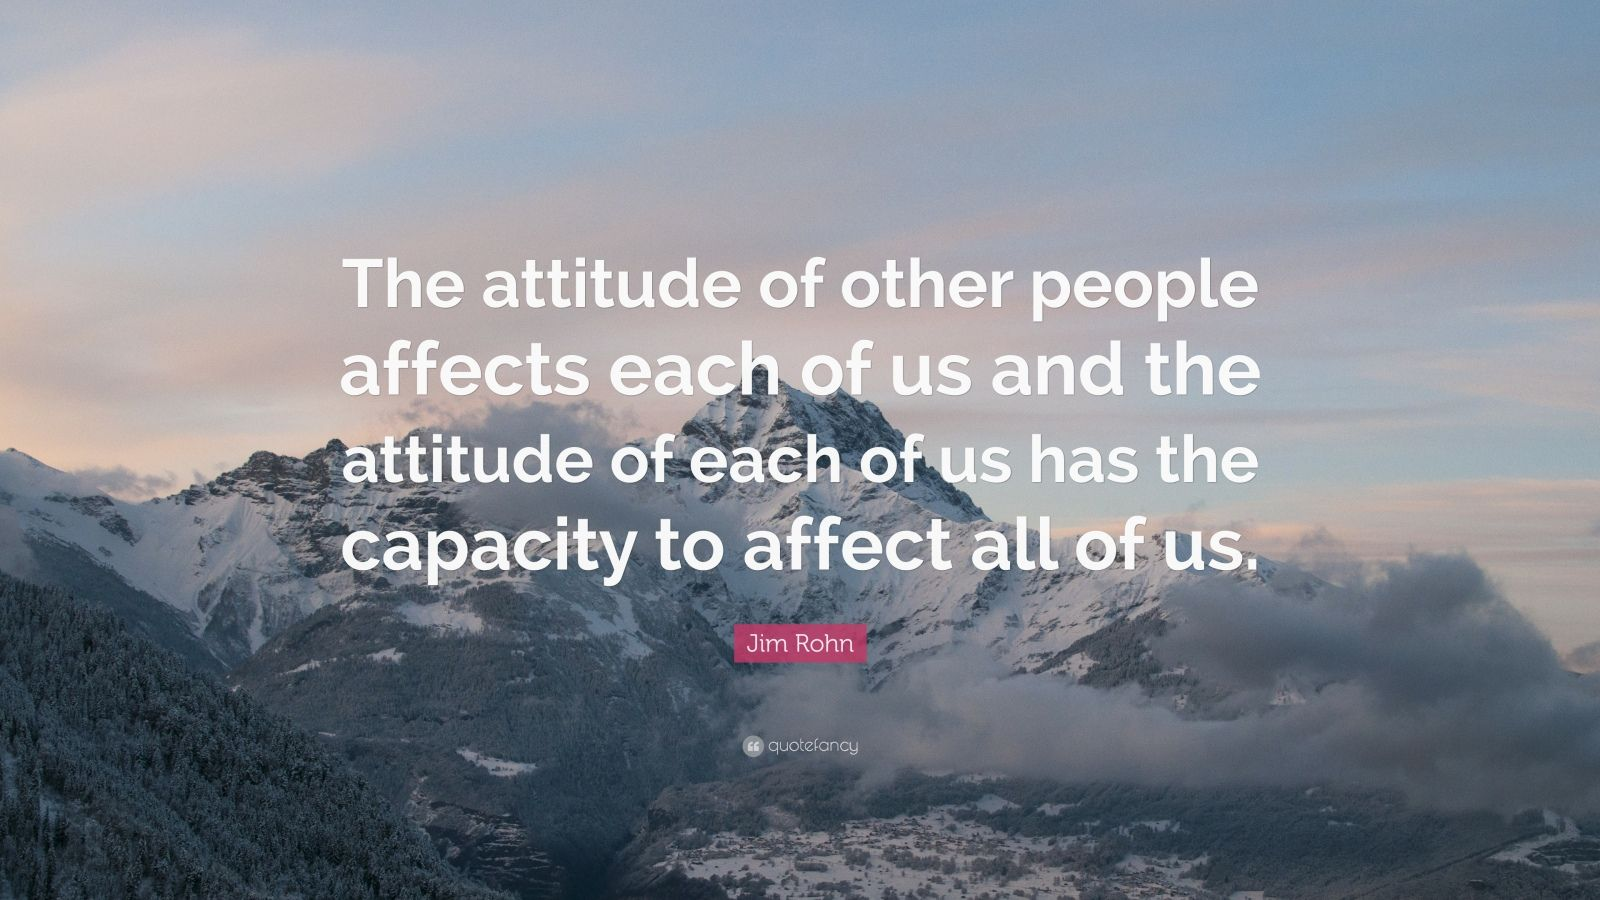 """Jim Rohn Quote: """"The attitude of other people affects each of us and the attitude of each of us has the capacity to affect all of us."""""""